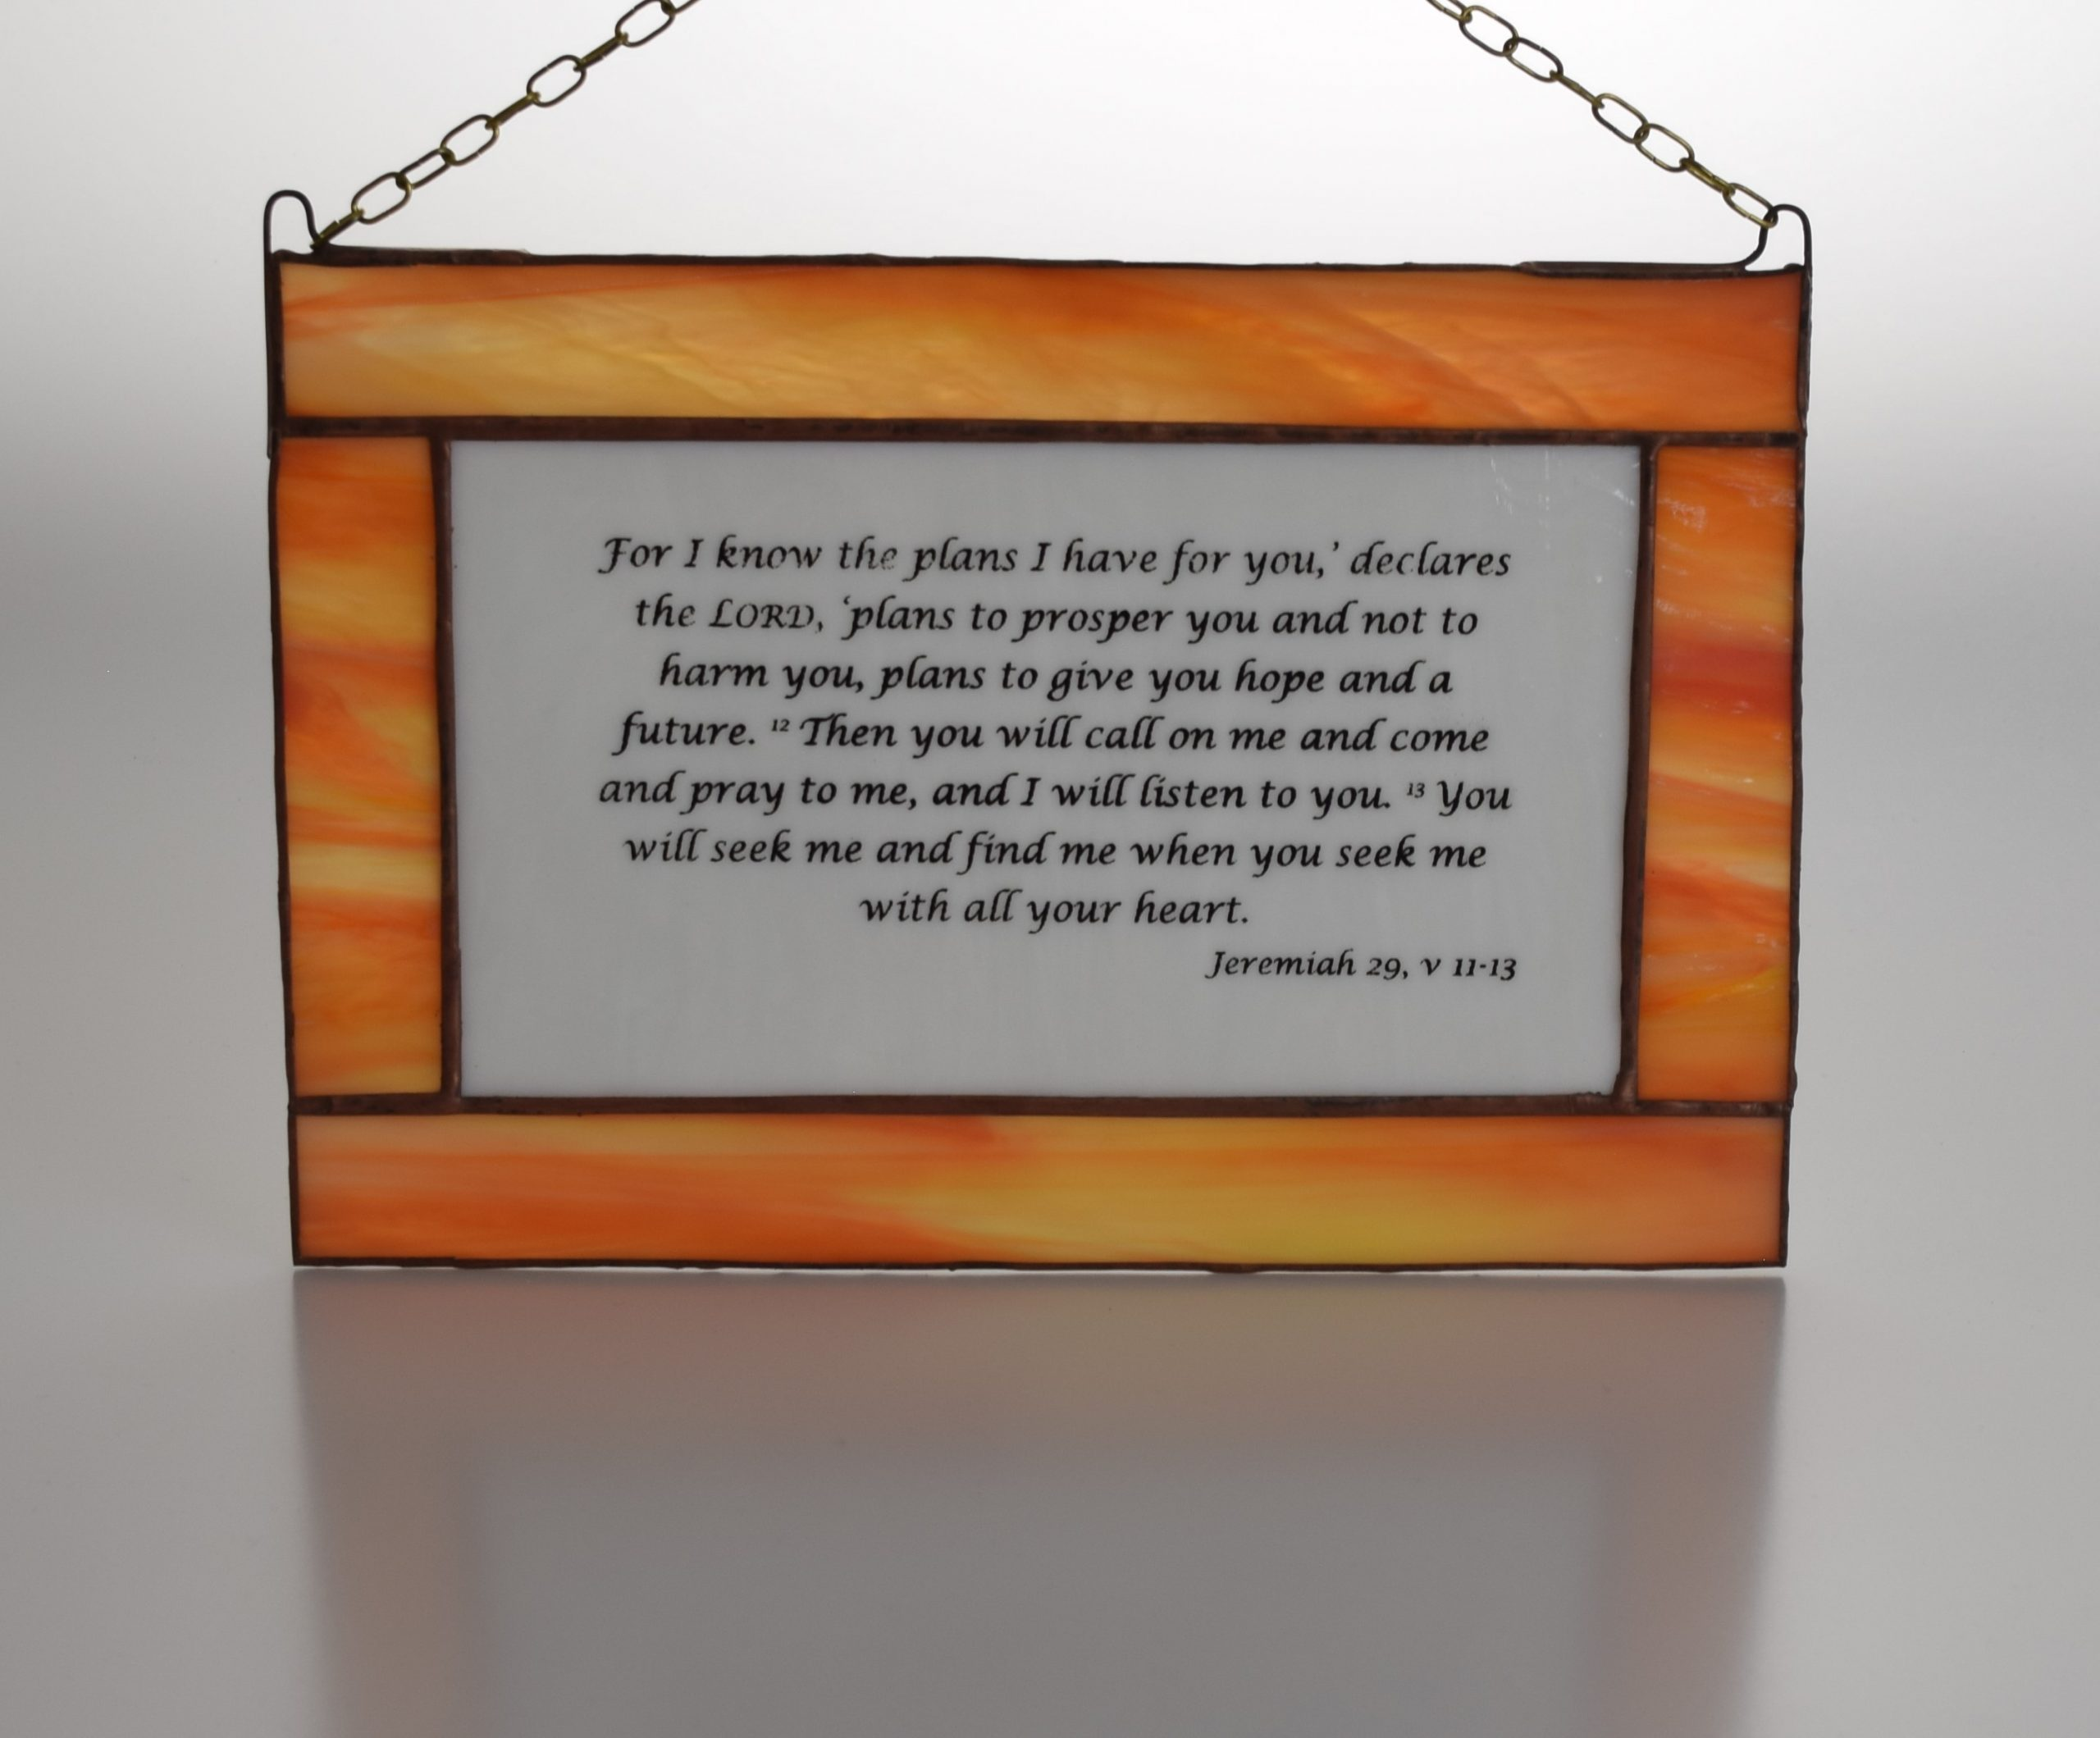 Jeremiah 29, v 11-13 stained glass panel with black script on white glass and an attractive orange surround